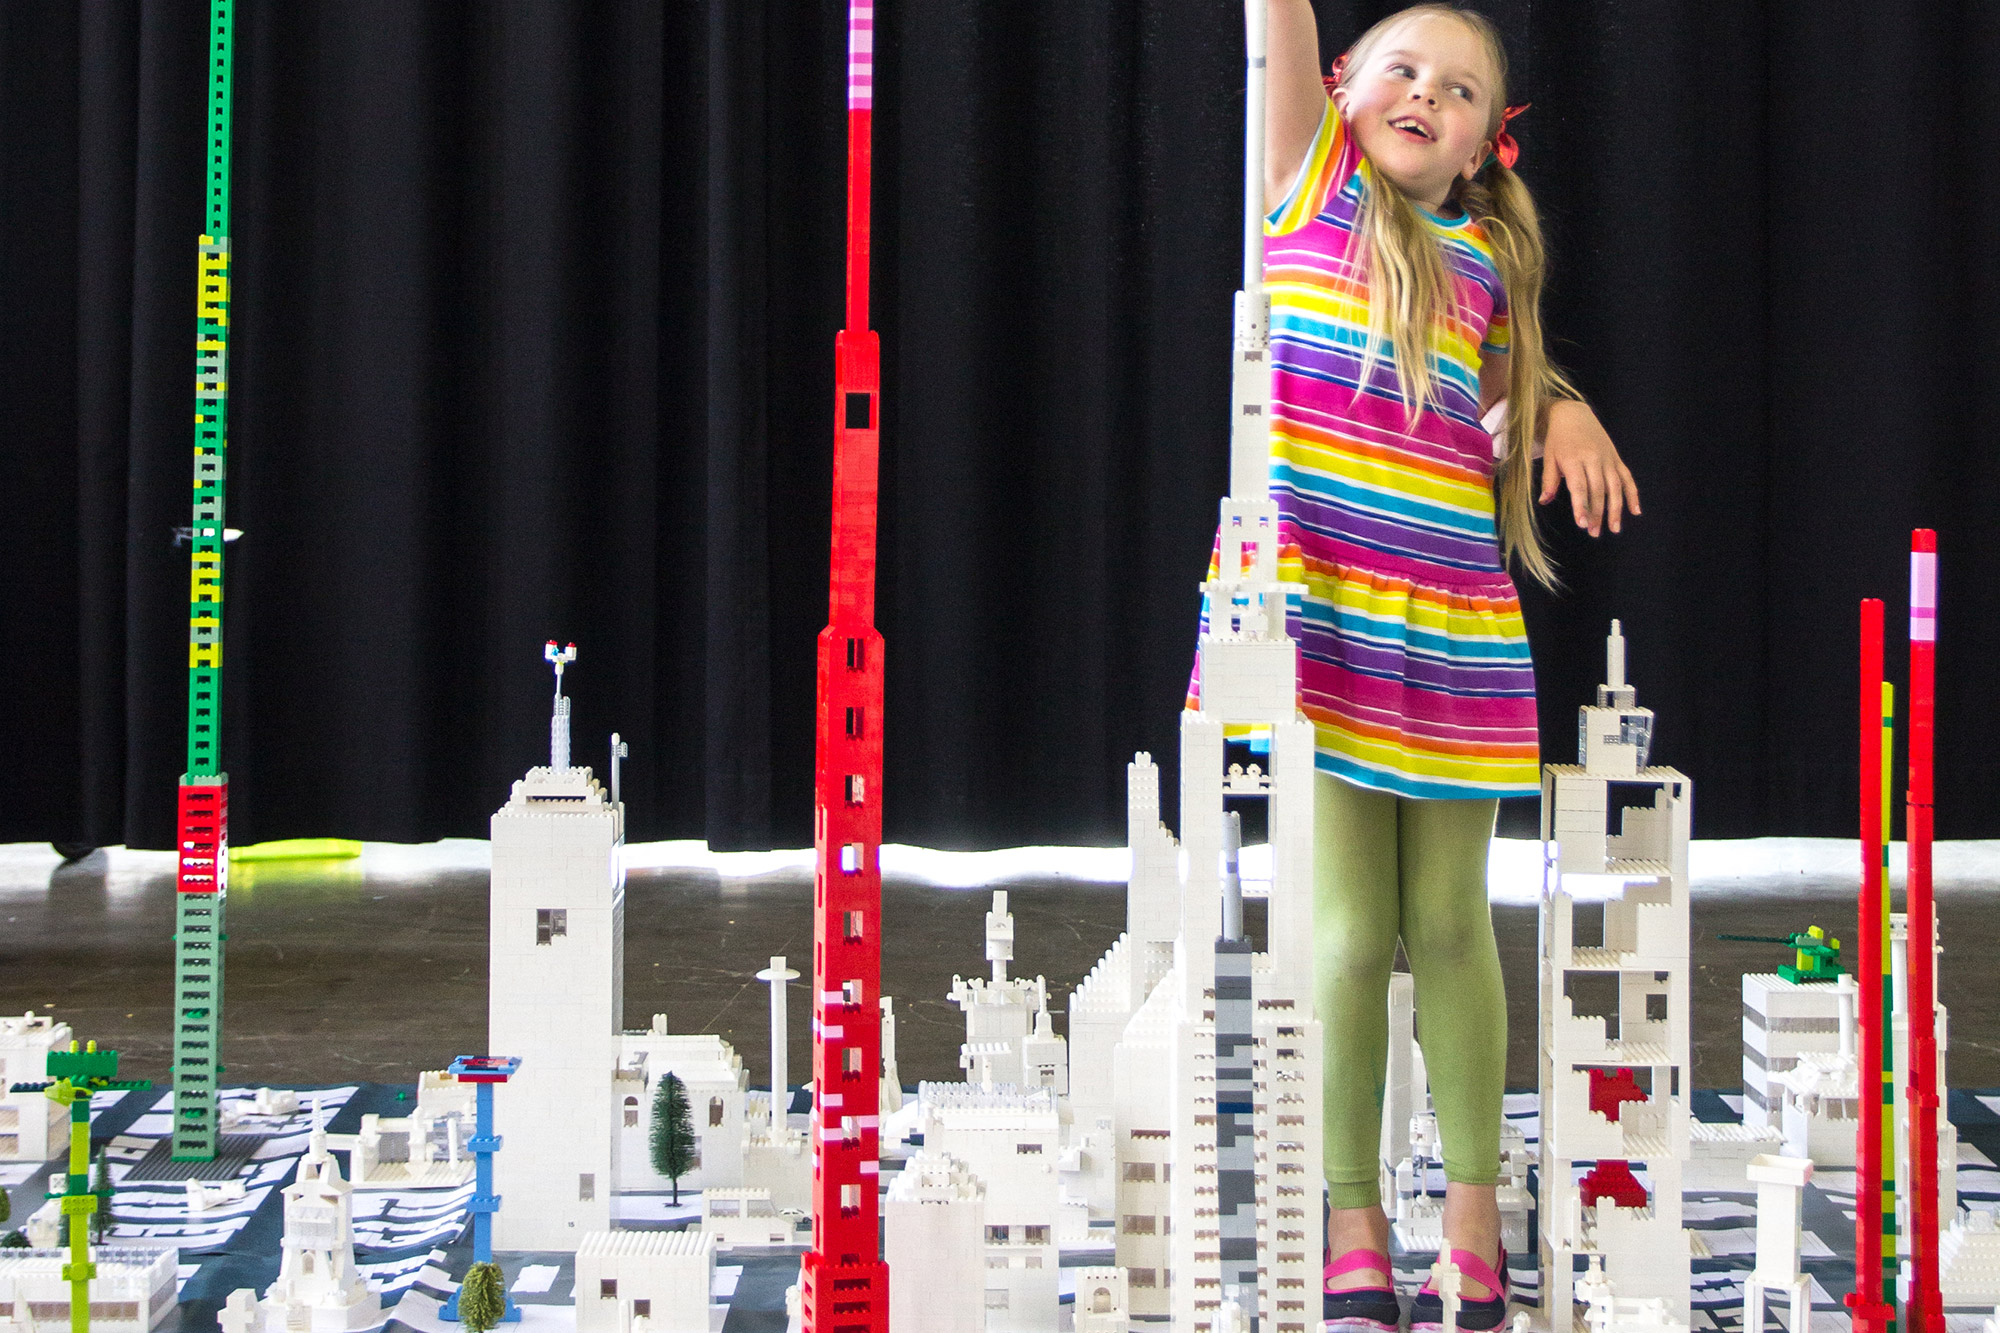 Lego Tower Workshop